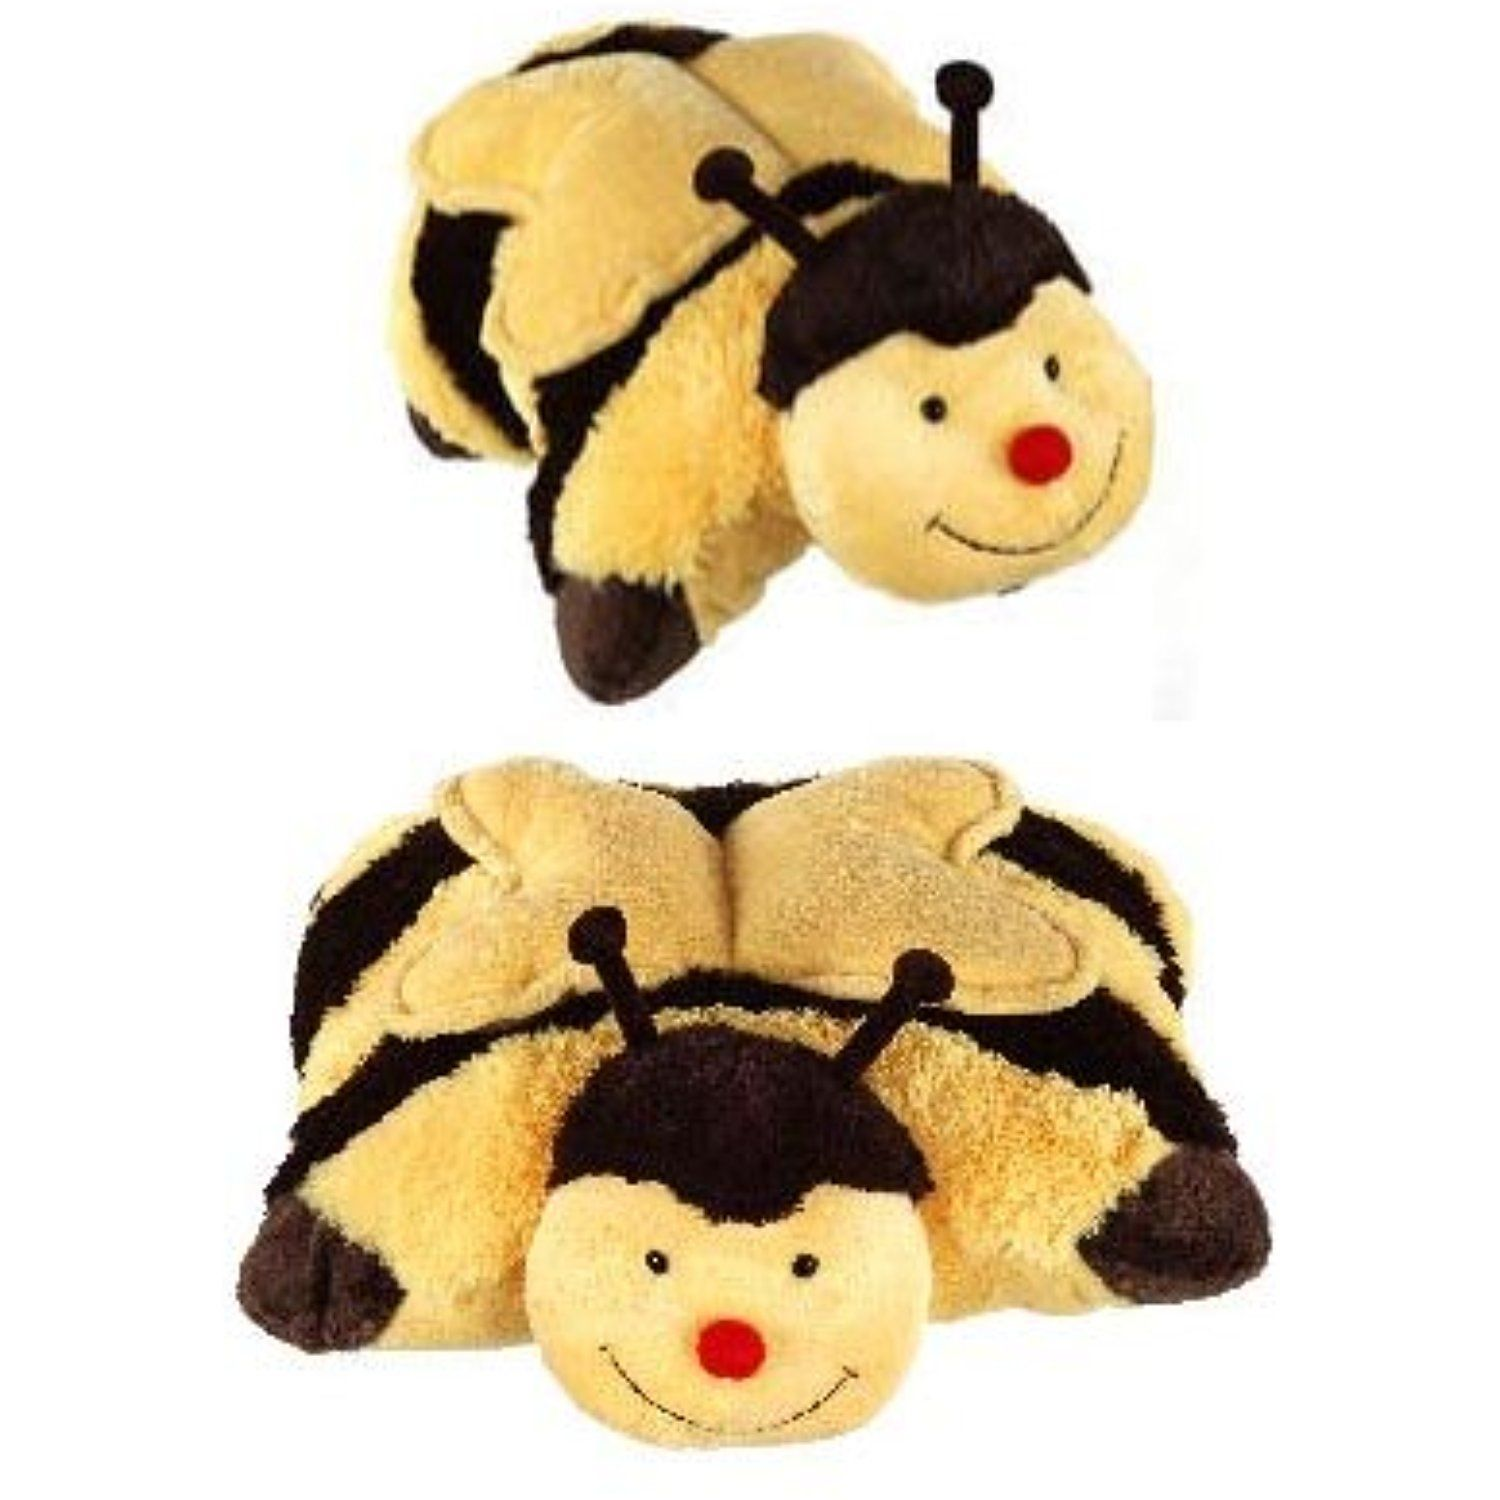 My Pillow Pets Large 18 Inch Square Buzzy Bumble Bee Plush Pillow Be Sure To Check Out This Awesome P Animal Pillows Plush Pillows Teddy Bear Stuffed Animal [ 1500 x 1500 Pixel ]